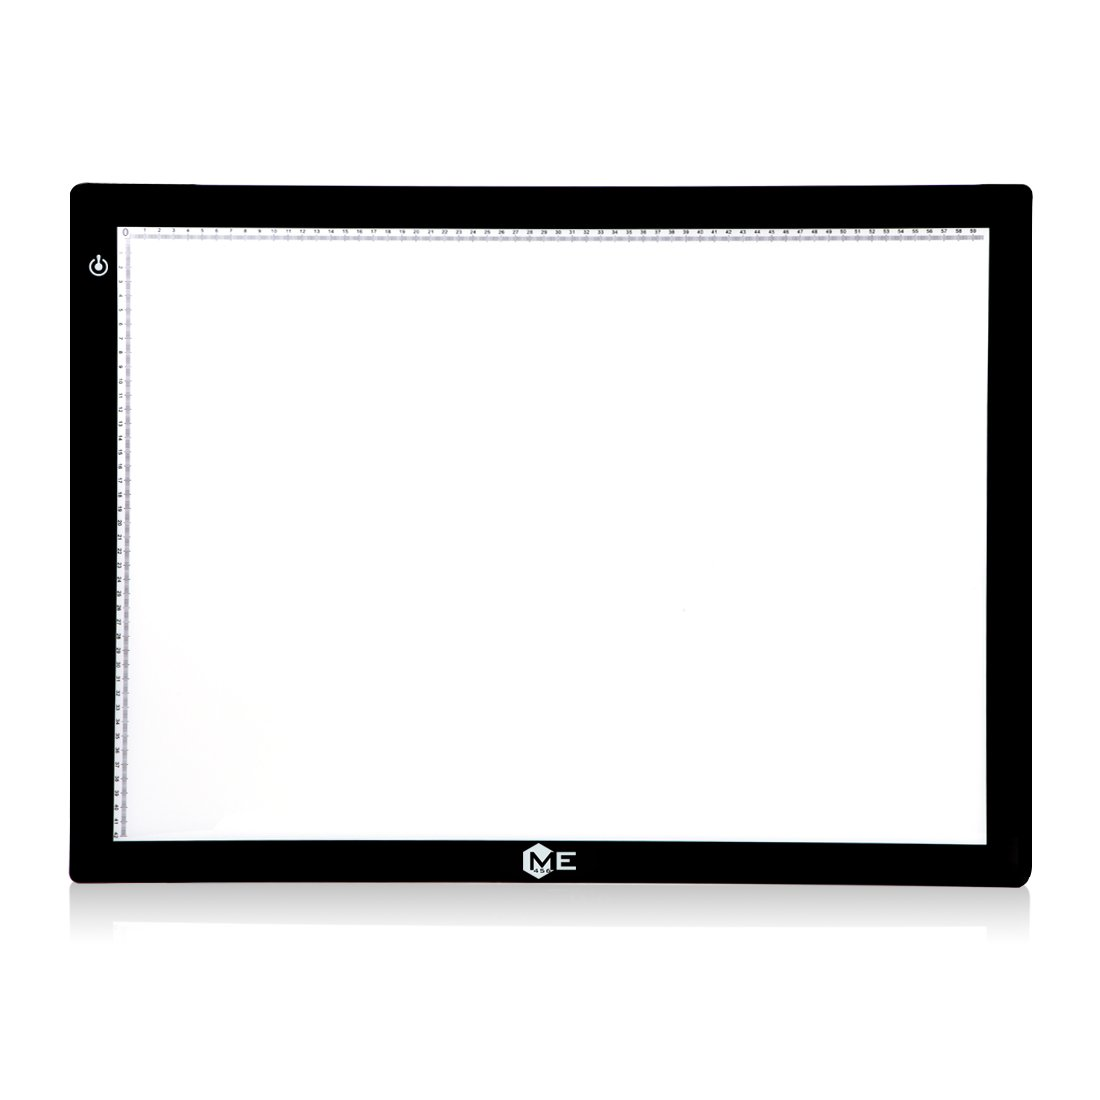 ME456 A2 Size LED Light Box 17x24 Inch Light Pad 12VDC Power Light Table for Tracing (Black) by ME456